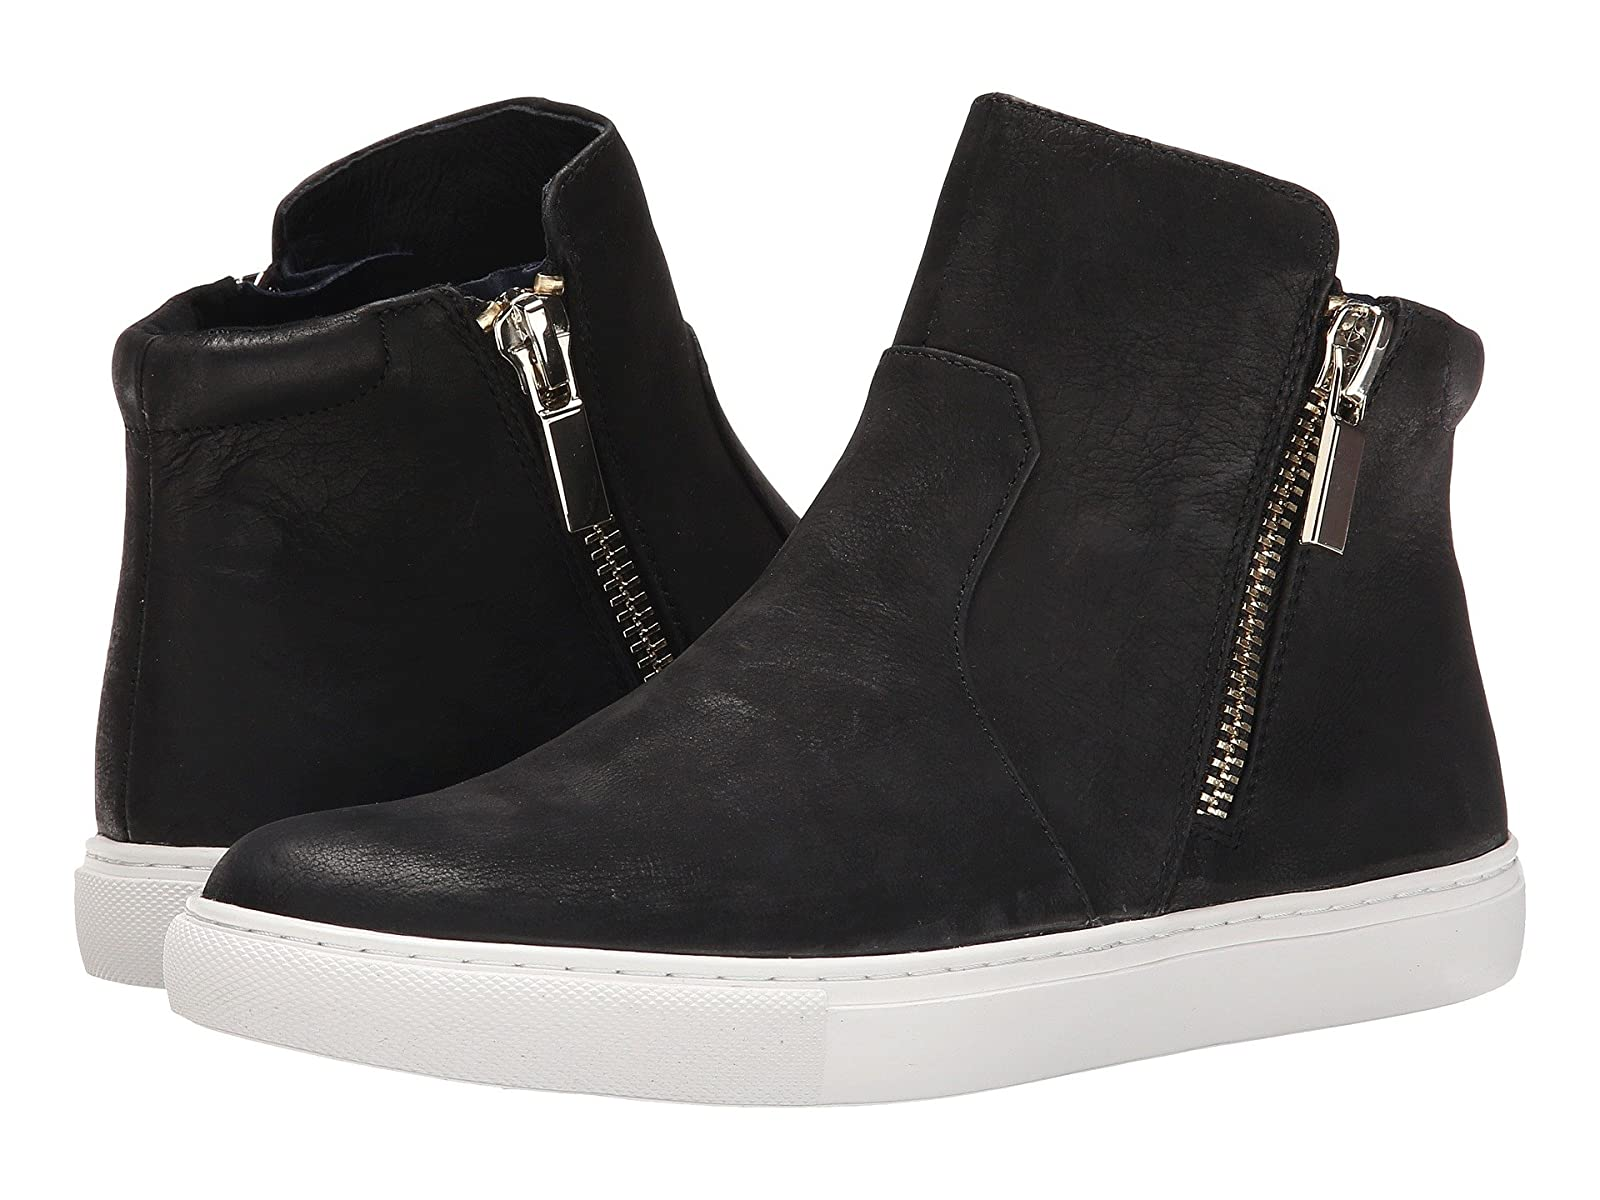 Kenneth Cole New York KieraAtmospheric grades have affordable shoes